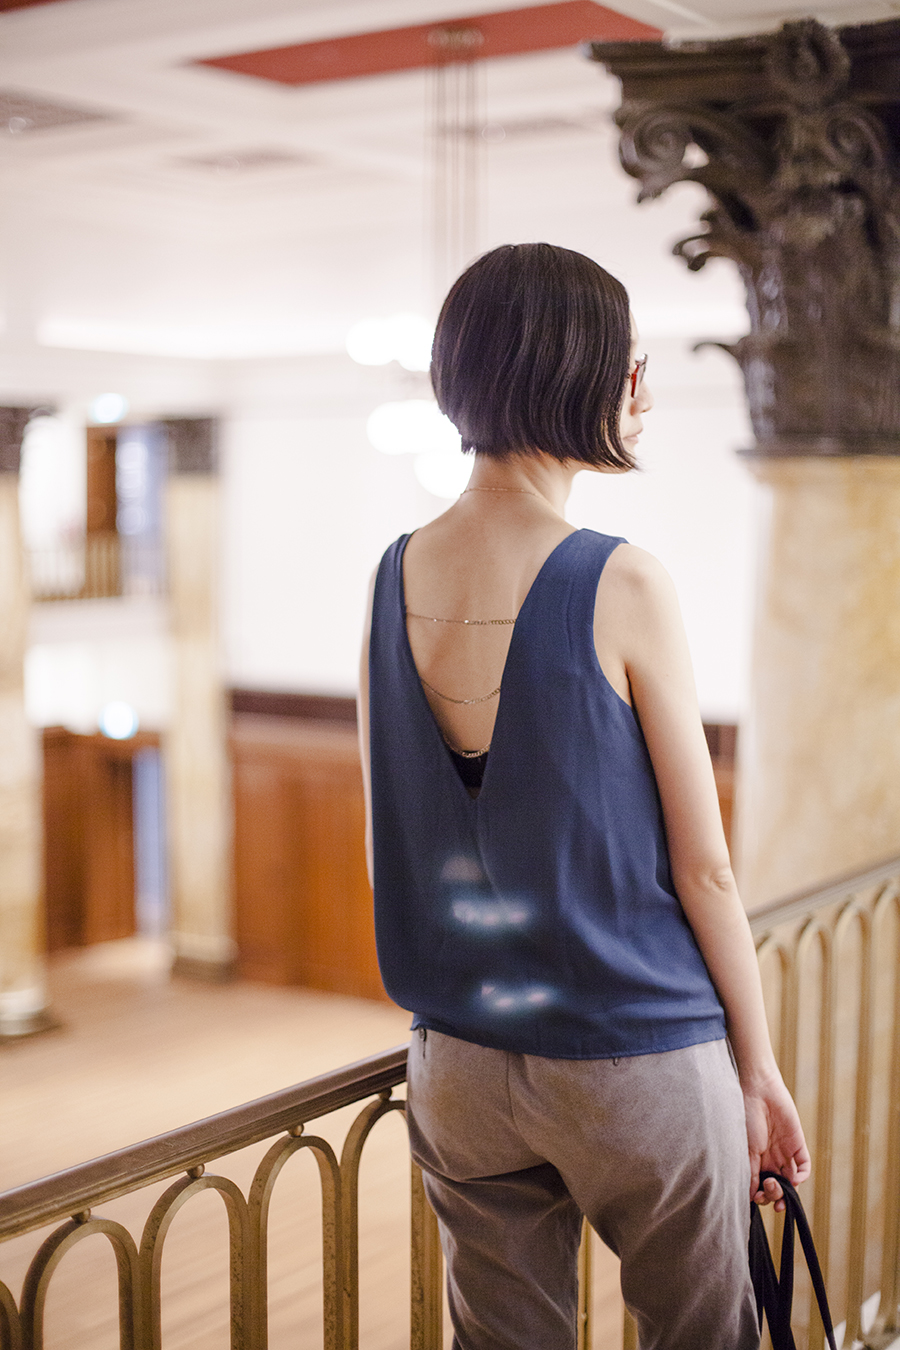 National Gallery Singapore: zalora chain back teal top.